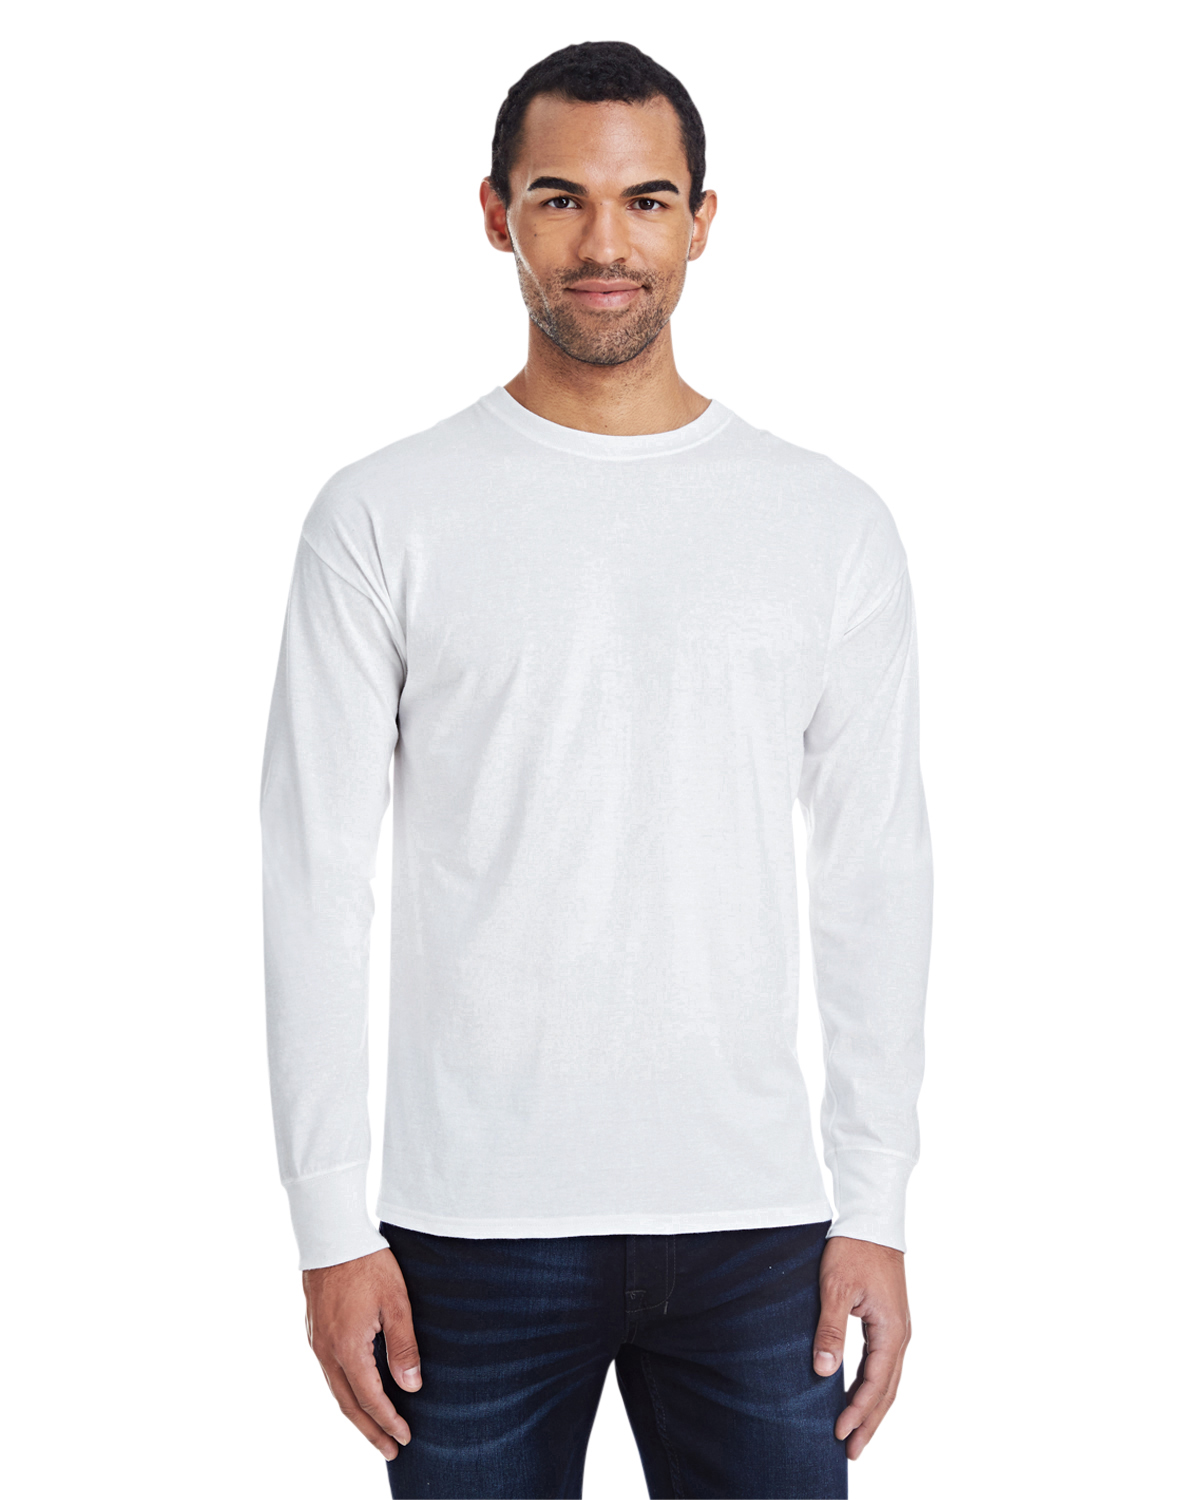 Men's 4.5 oz., 60/40 Ringspun Cotton/Polyester X-Temp® Long-Sleeve T-Shirt